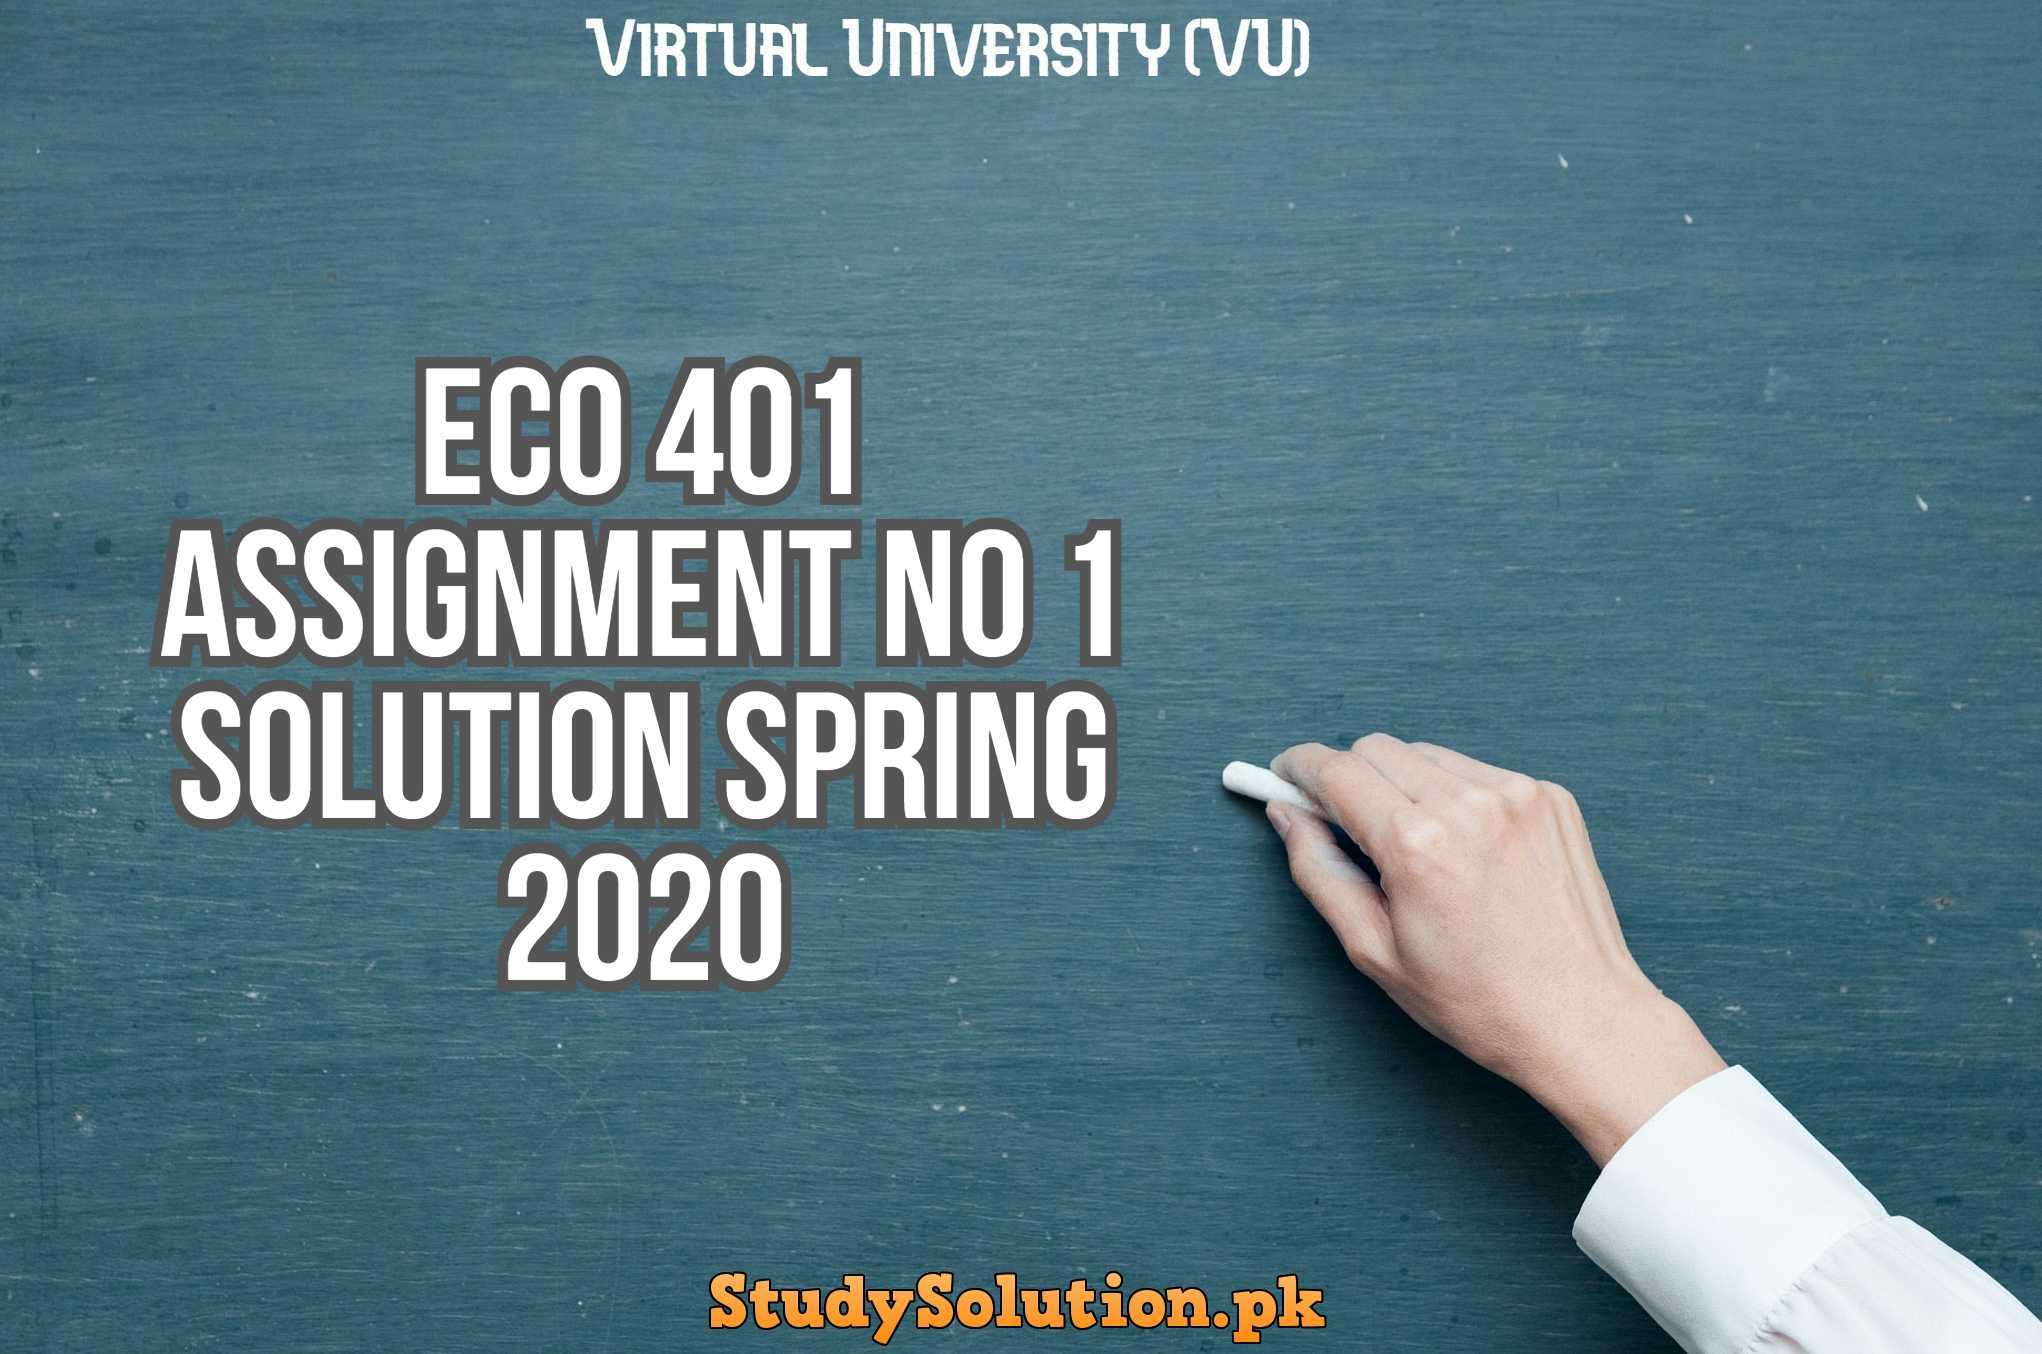 ECO 401 Assignment No 1 Solution Spring 2020